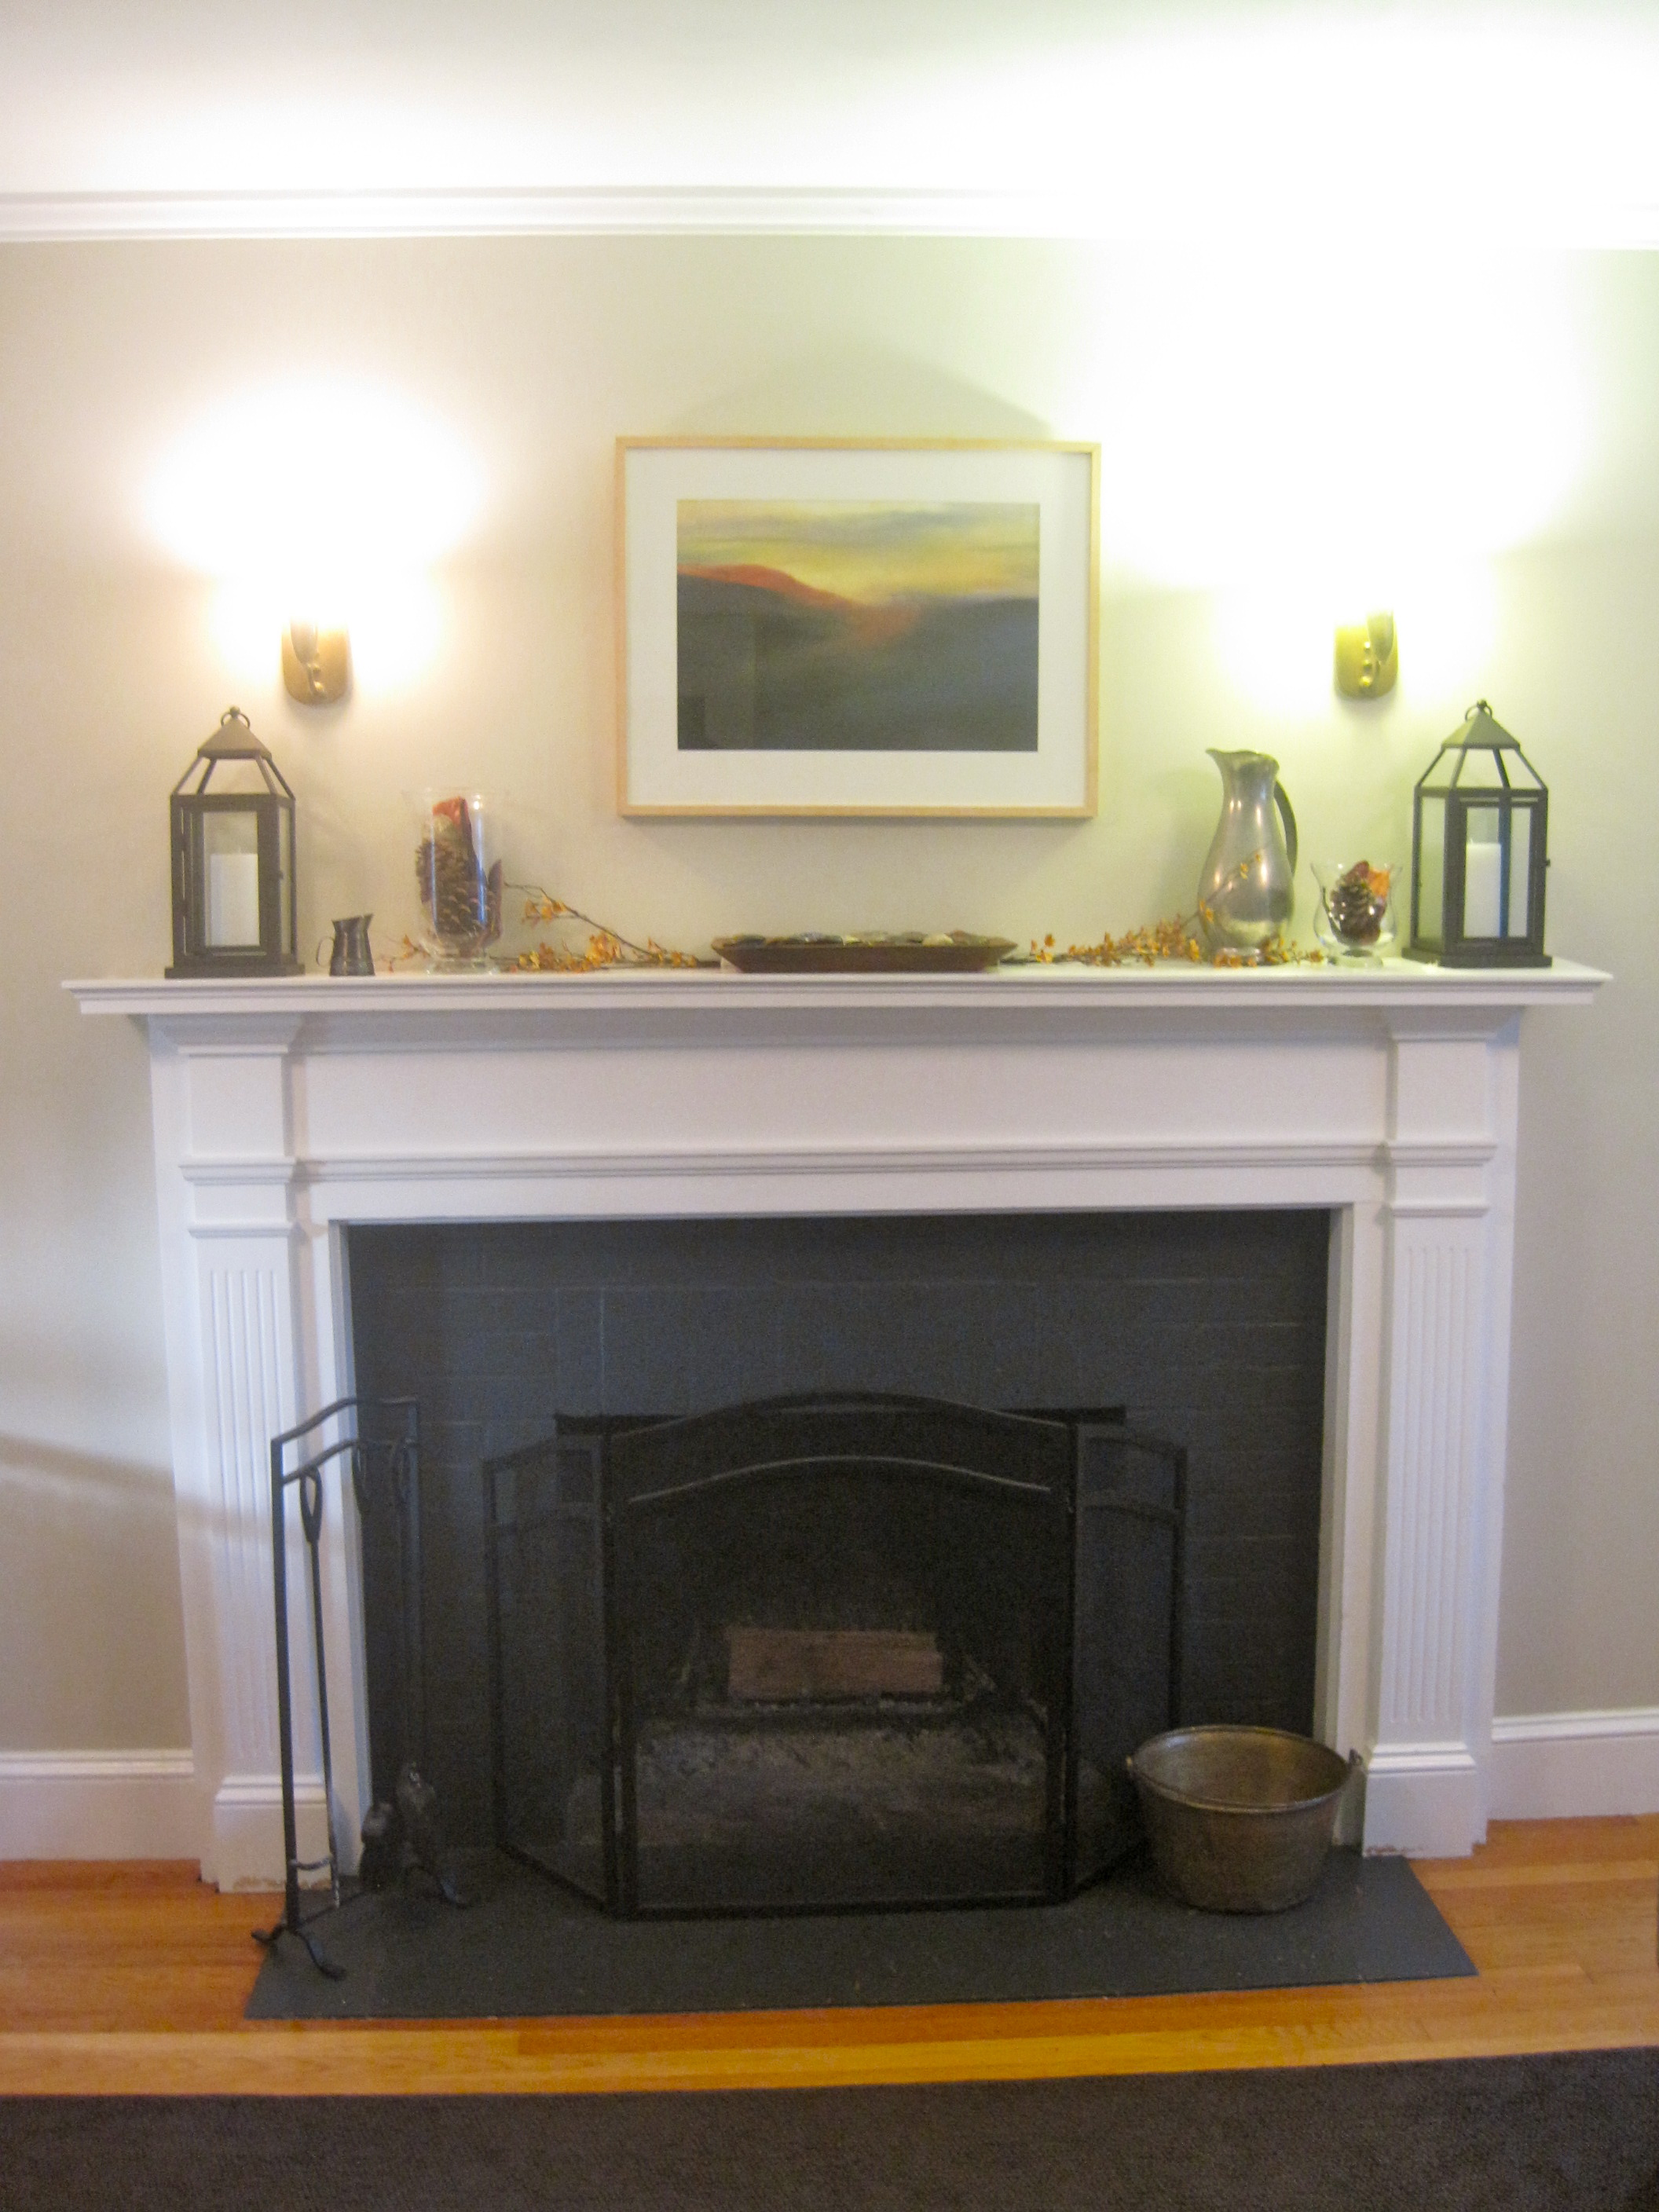 Mantel Decorating Ideas For Everyday 2015 ~ 185042_Fireplace Mantel Decorating Ideas For Everyday